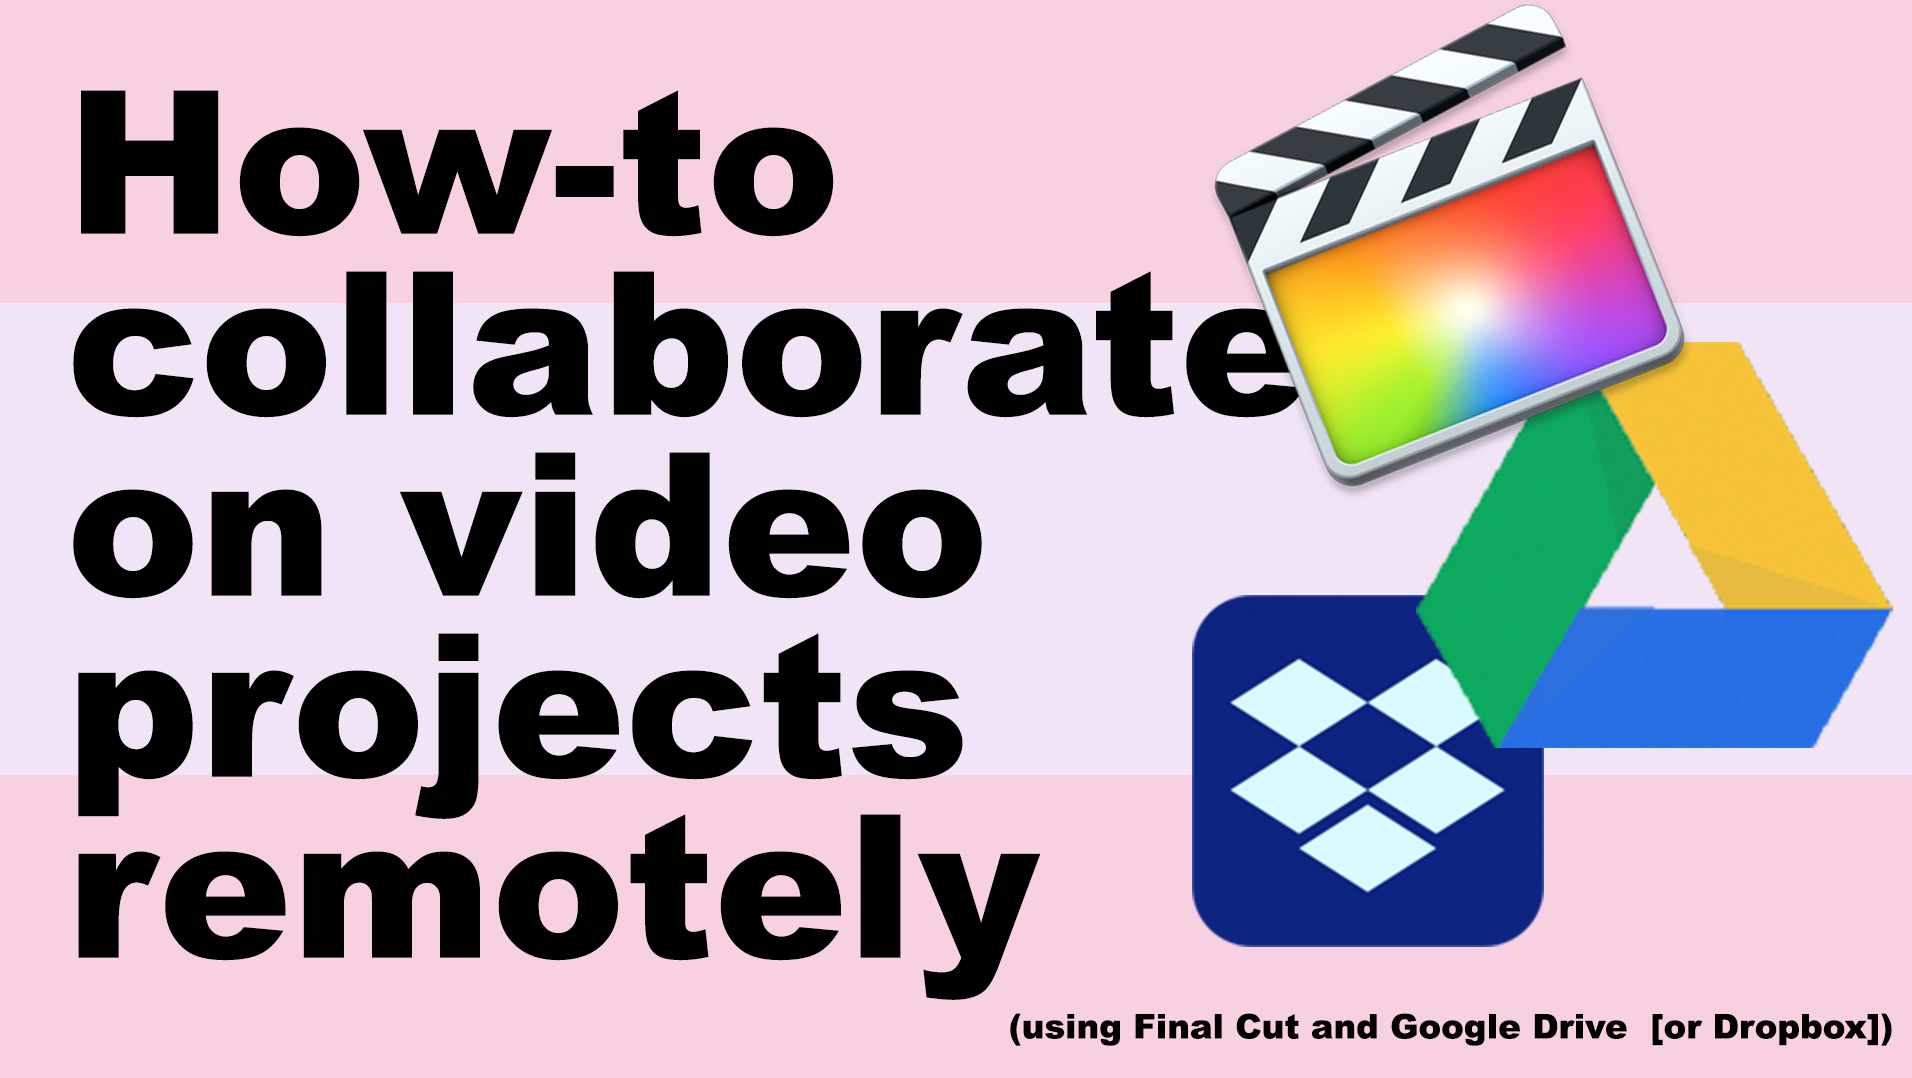 Mua Robux 123 Free Robux Kingdom Video How To Collaborate On Video Projects Remotely Using Fcpx And Google Drive Inspired Video Marketing